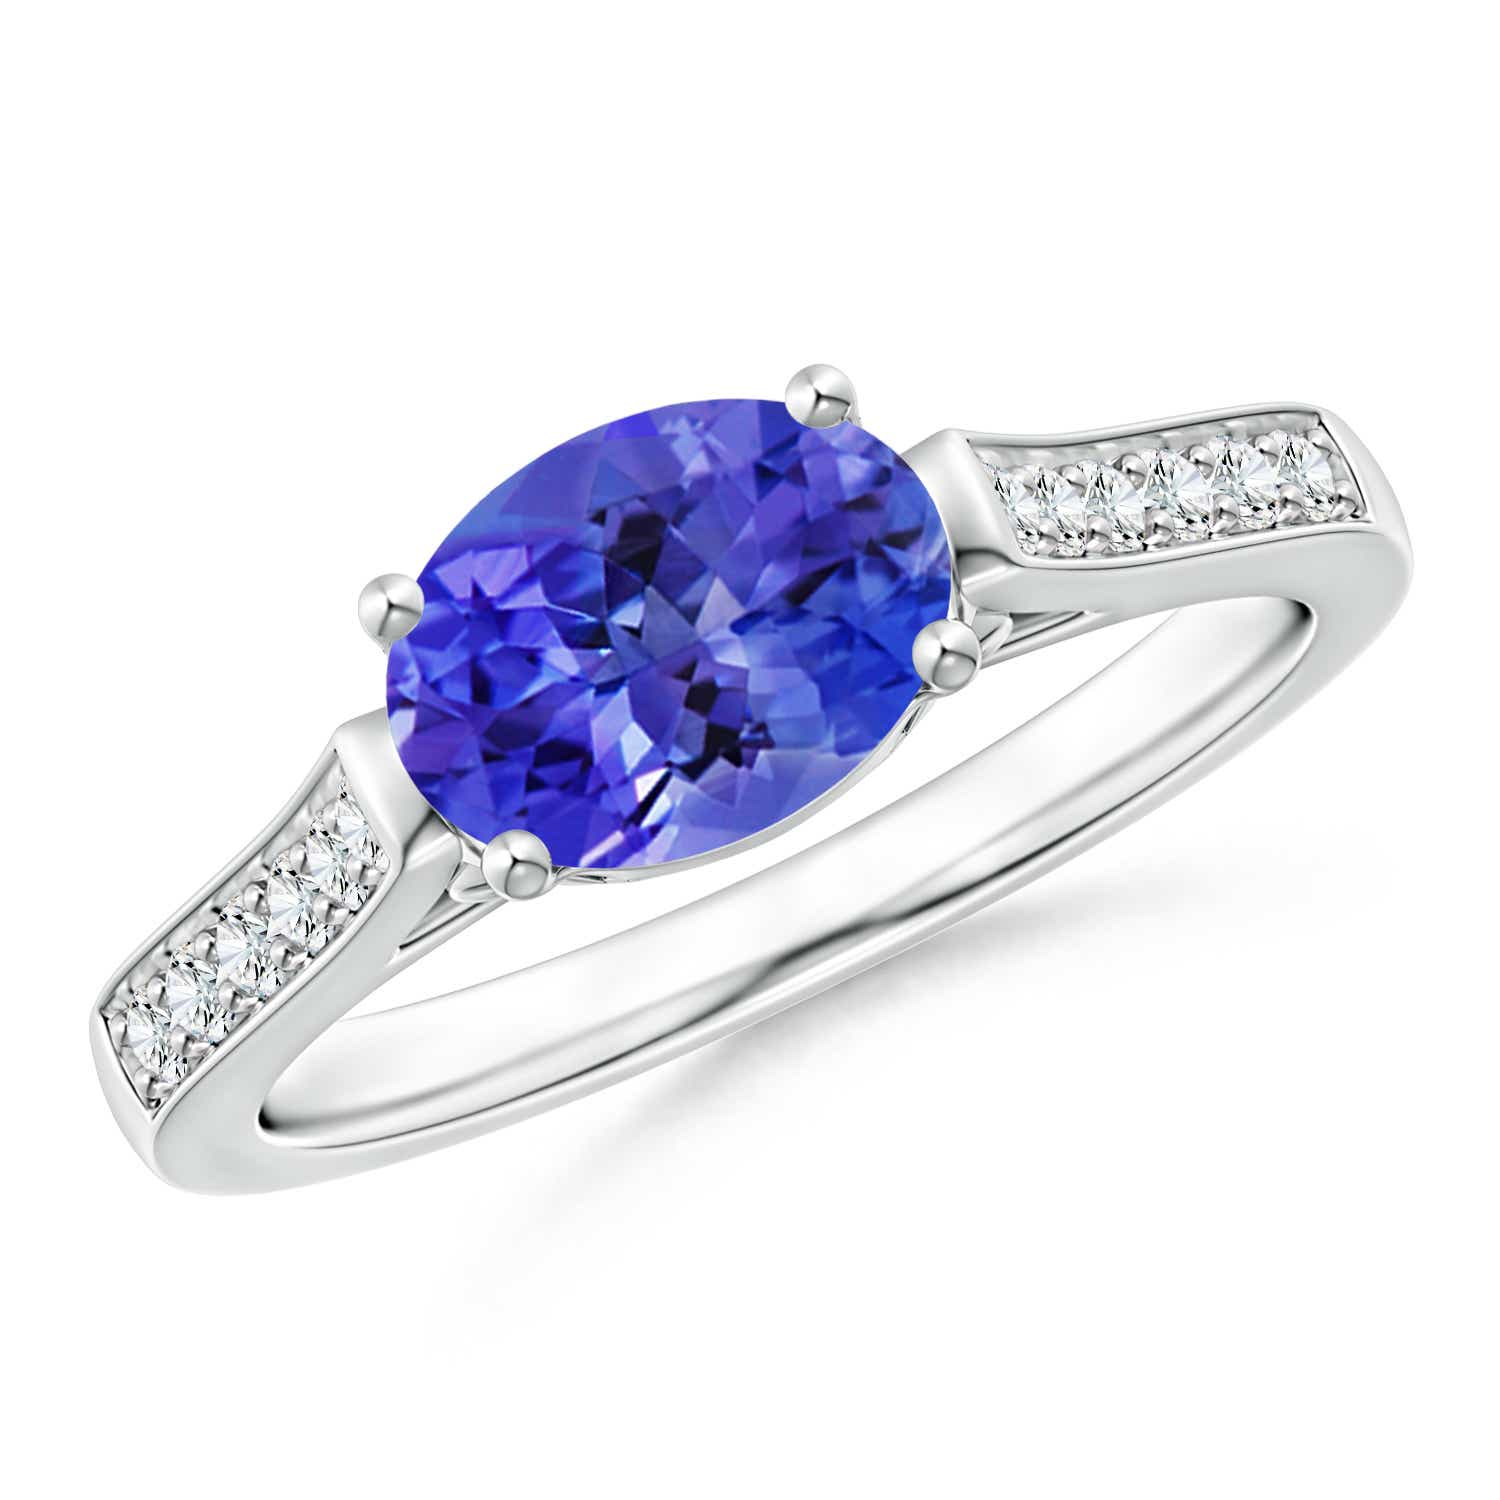 lace tanzanite bands engagement pinterest diamond rings and ring pin